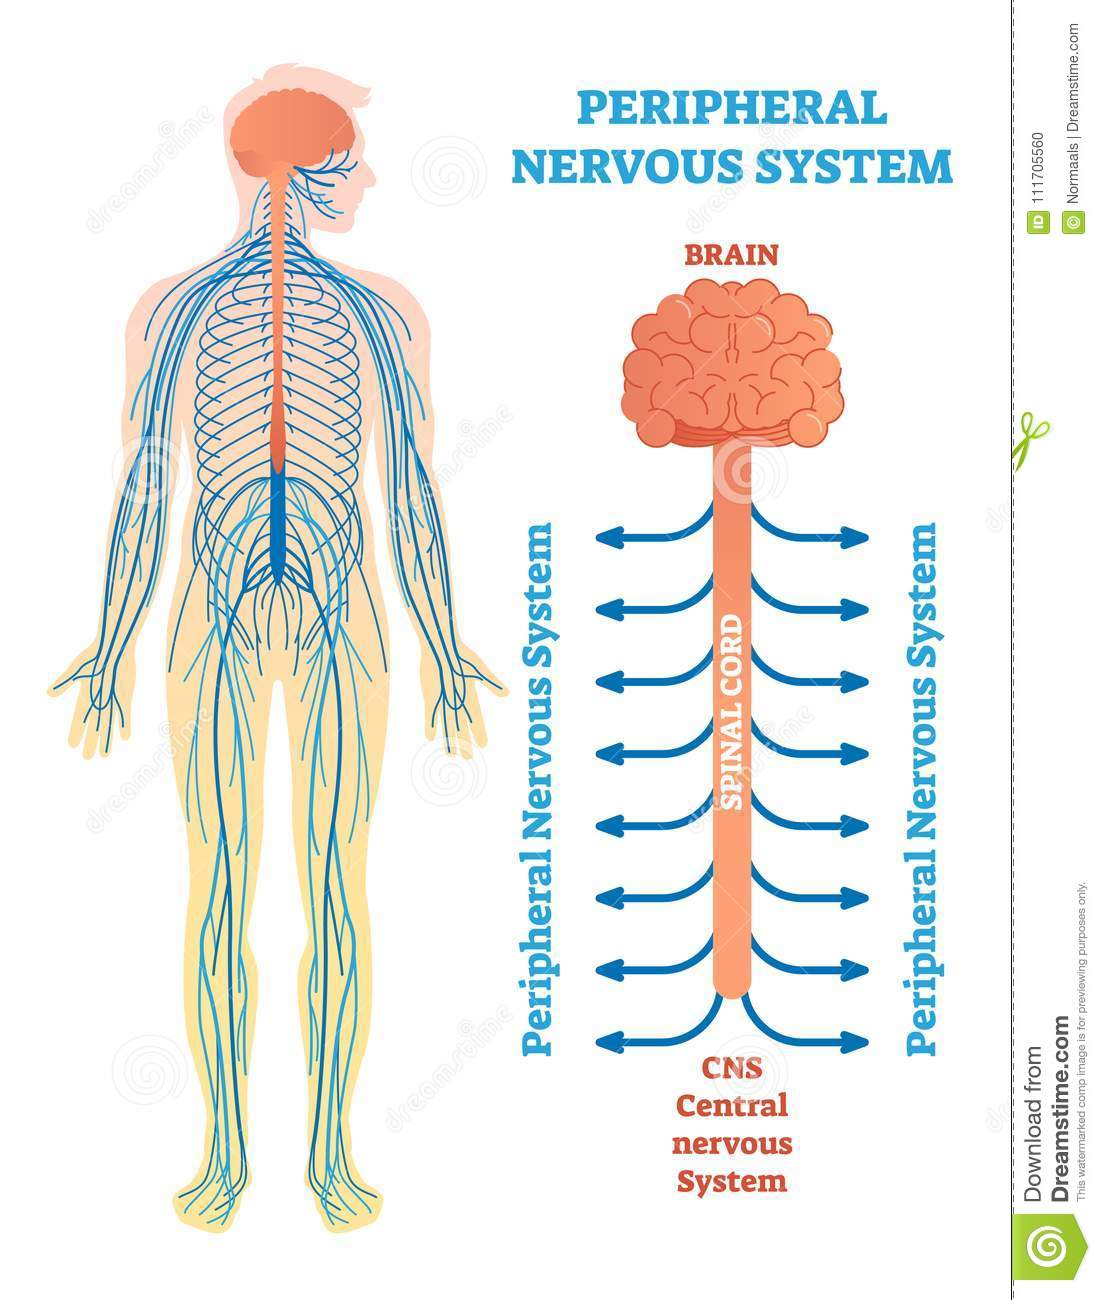 spinal cord and nerves diagram ezgo golf cart wiring gas peripheral stock illustrations 3 540